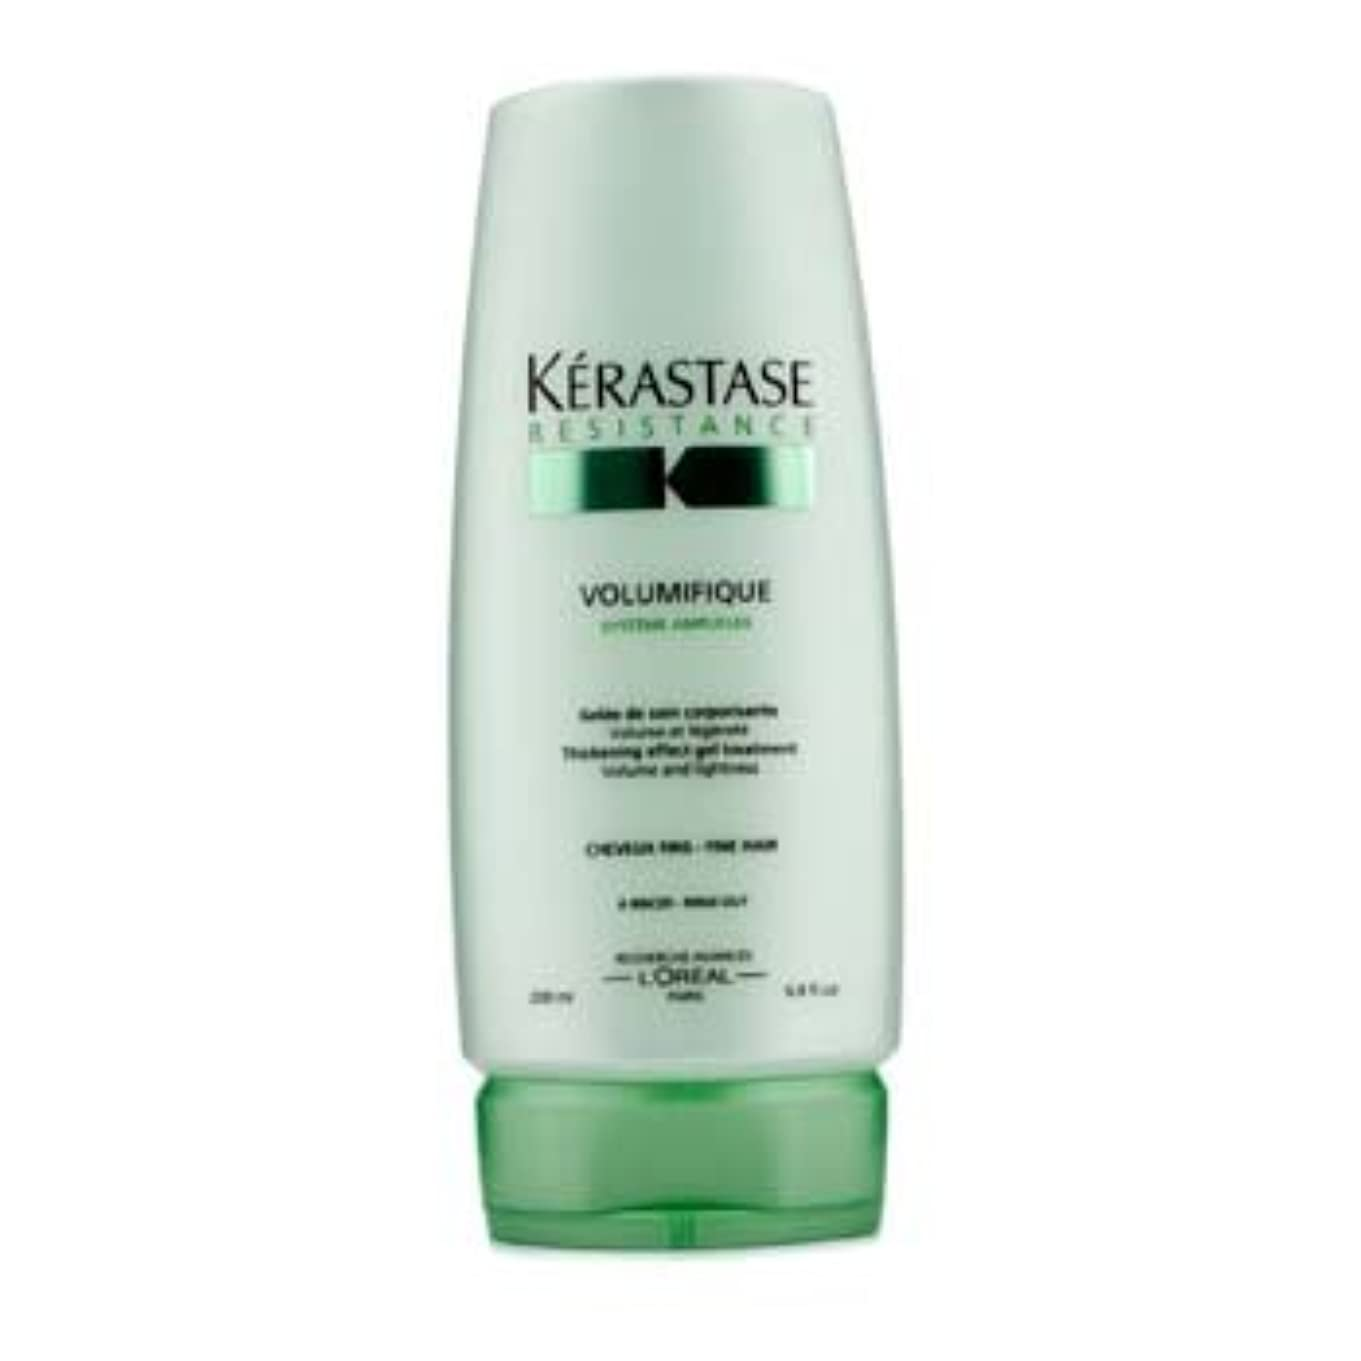 長椅子スタイルハードリングケラスターゼ Resistance Volumifique Thickening Effect Gel Treatment (For Fine Hair) 200ml/6.8oz並行輸入品